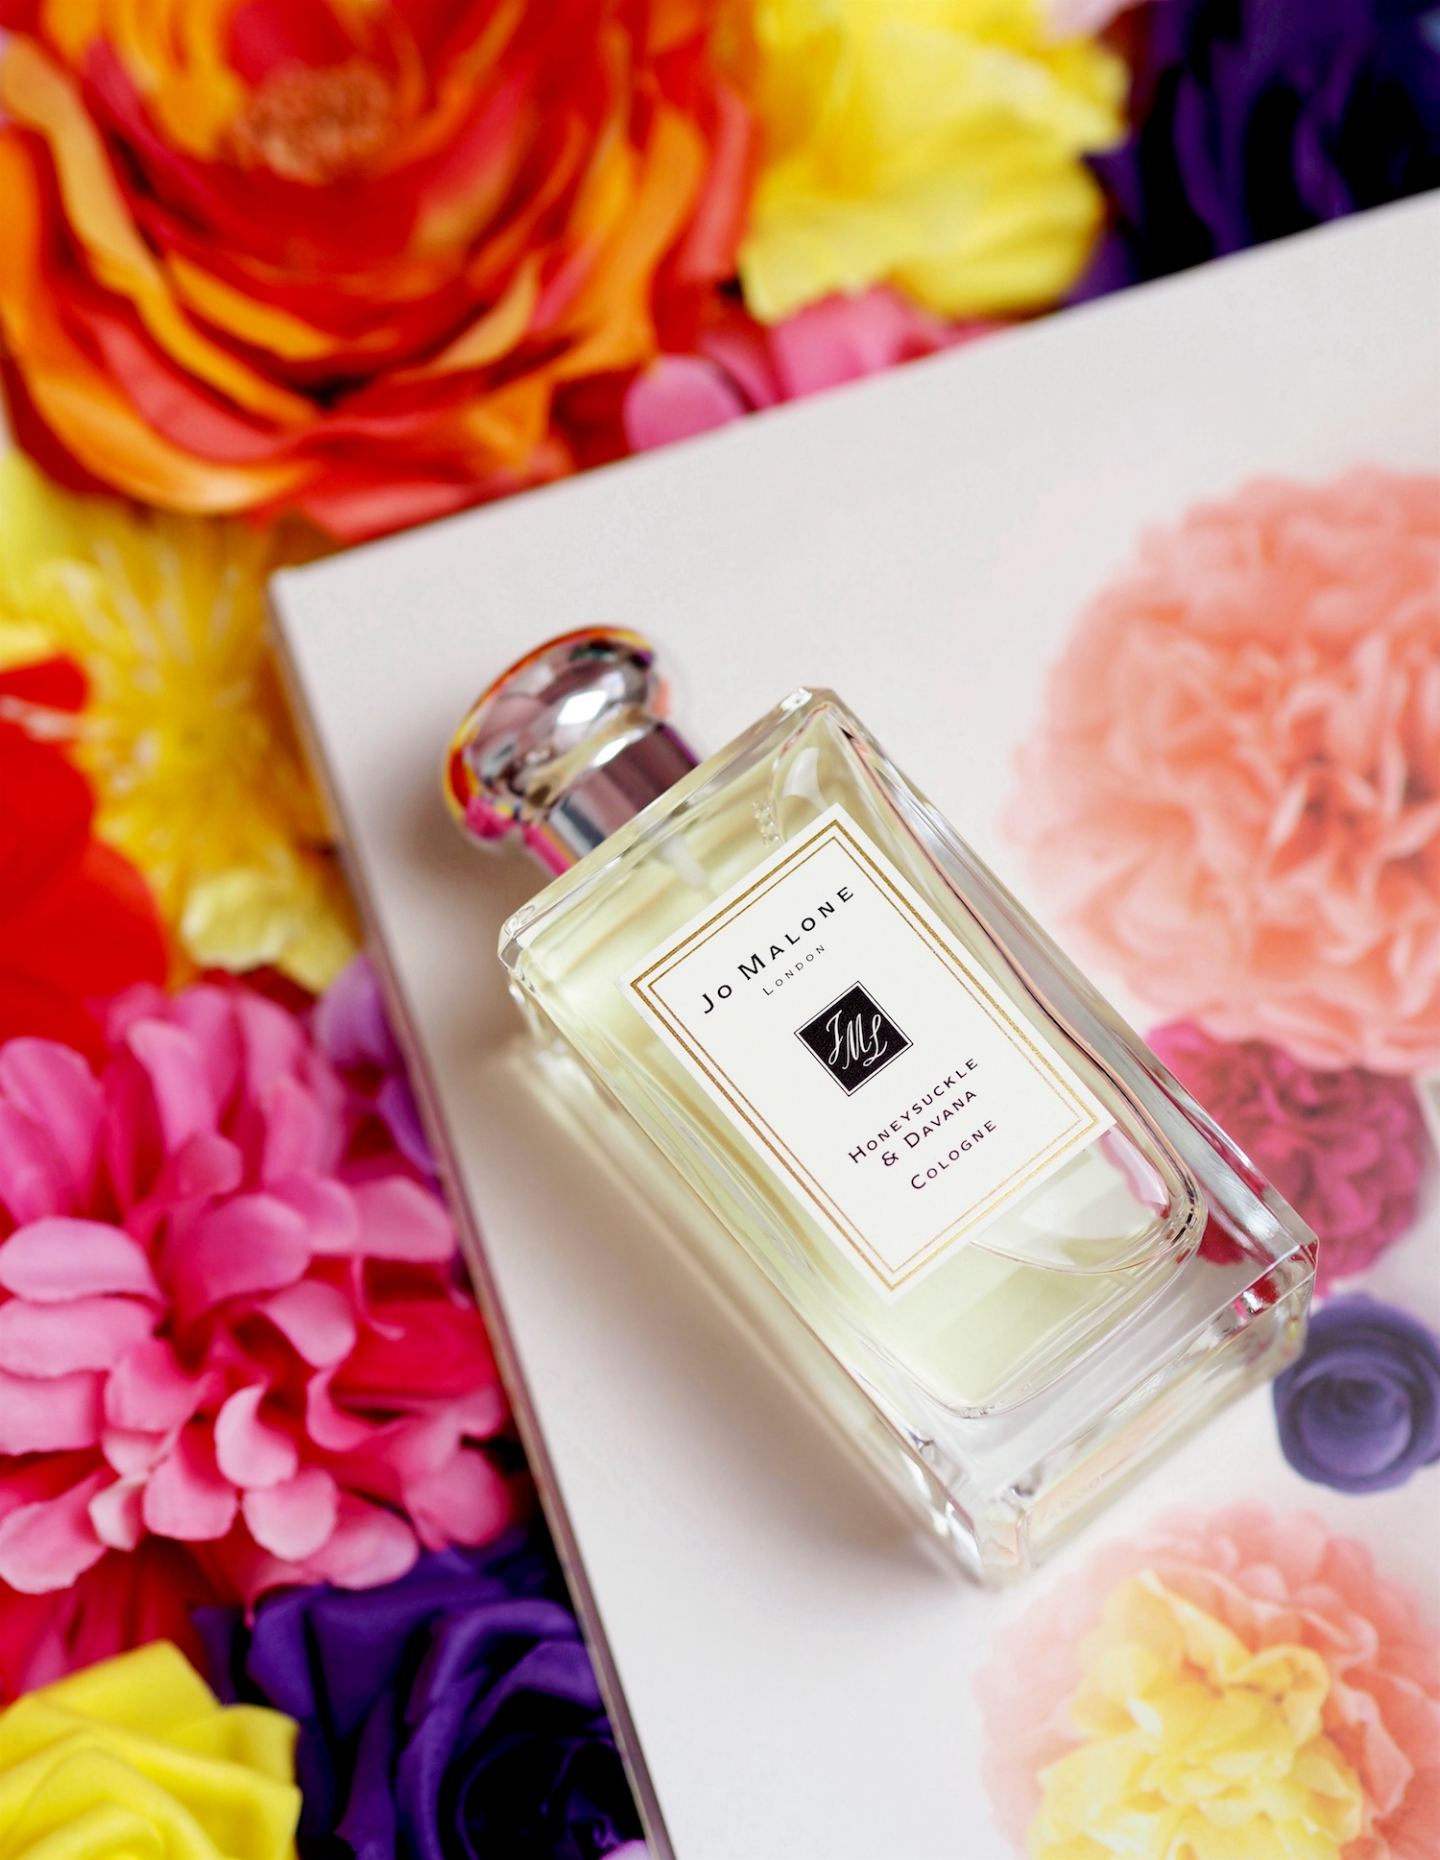 Jo Malone London 'Honeysuckle & Davana' perfume fragrance 2018